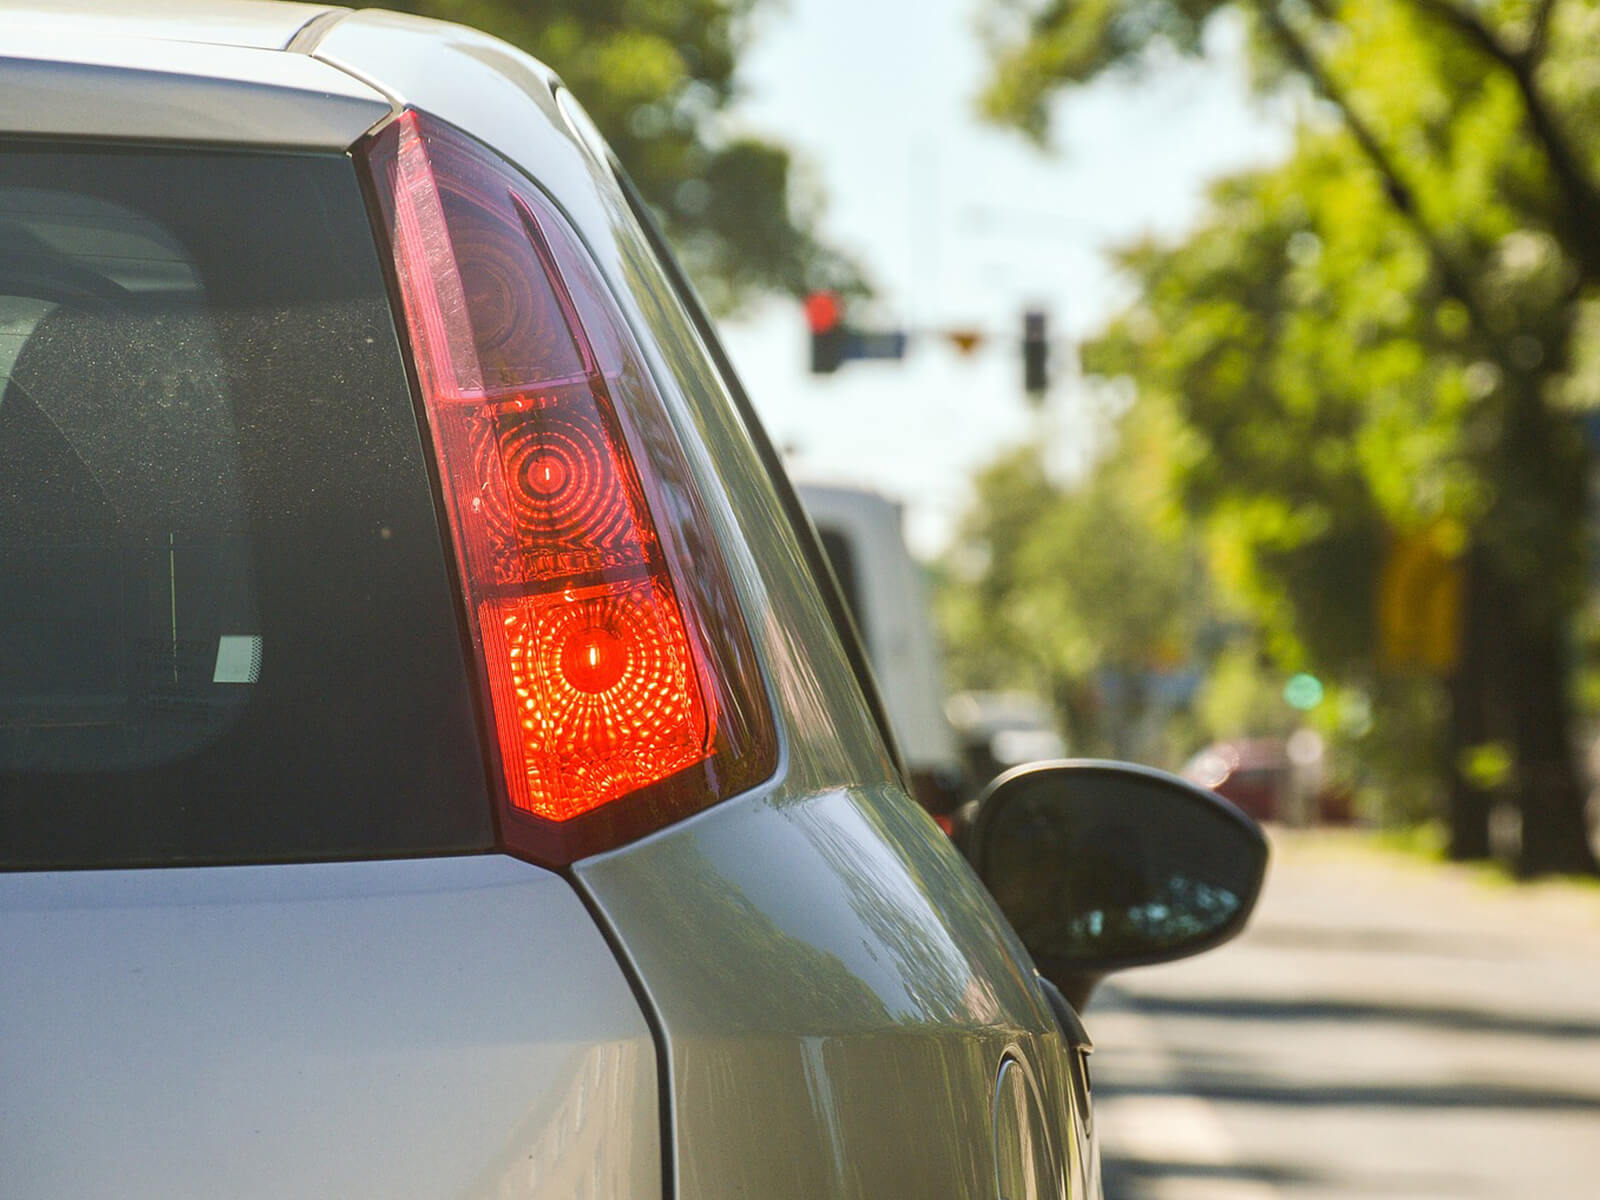 Does Car Insurance Cover Routine Maintenance?